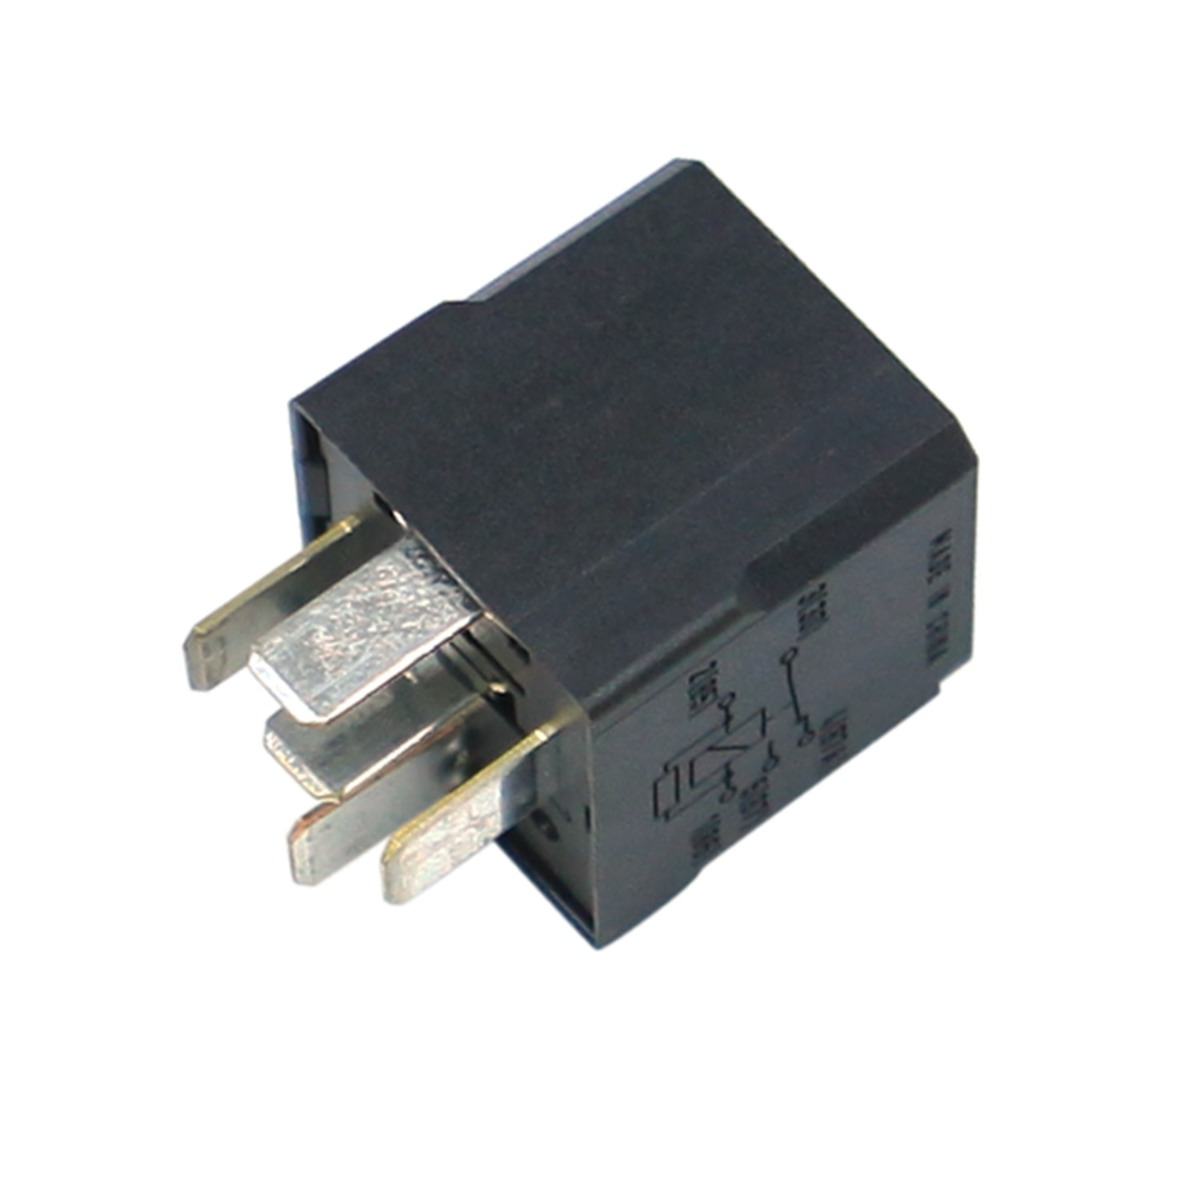 Relay Switch Fuse Panel 6679820 Compatible with Bobcat 751 753 763 773 863 864 873 883 963 S510 S530 S550 S570 S590 S630 S650 S750 S770 T550 T590 T630 T650 T750 T770 T870